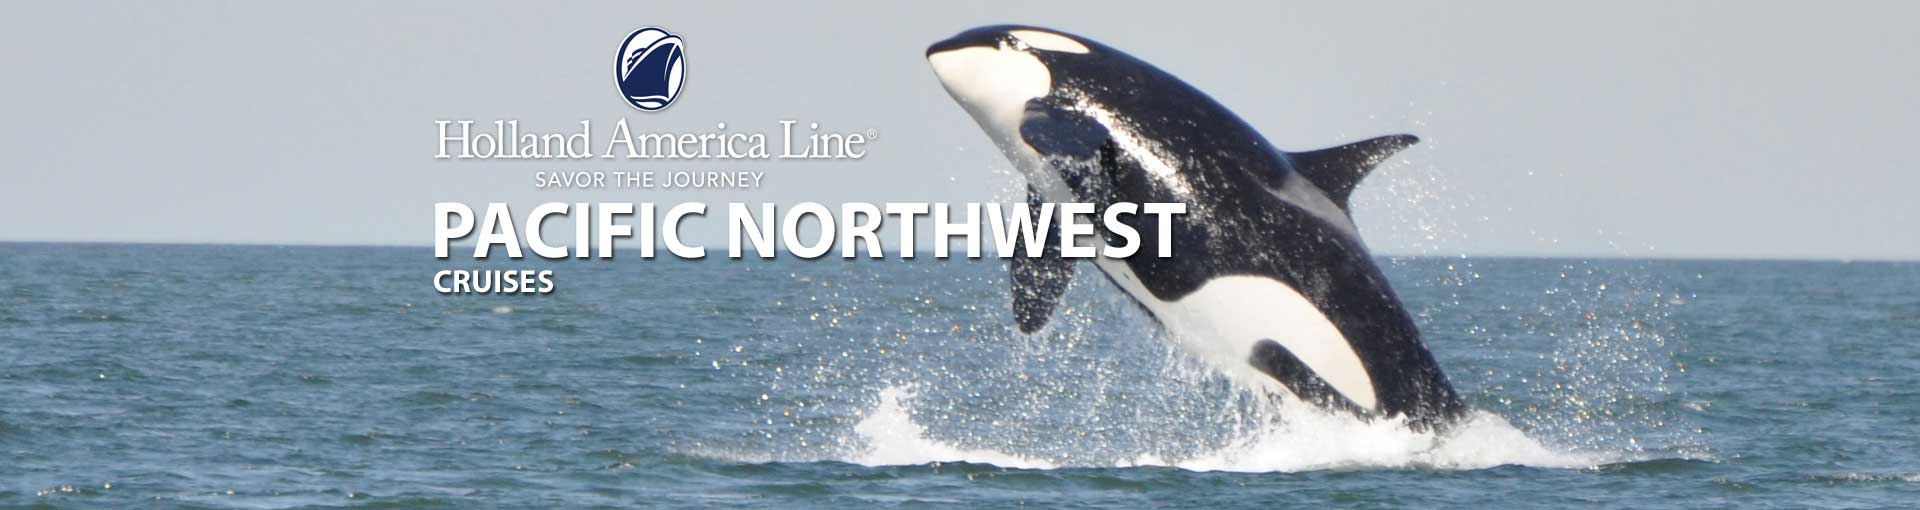 Holland America Pacific Northwest Cruises